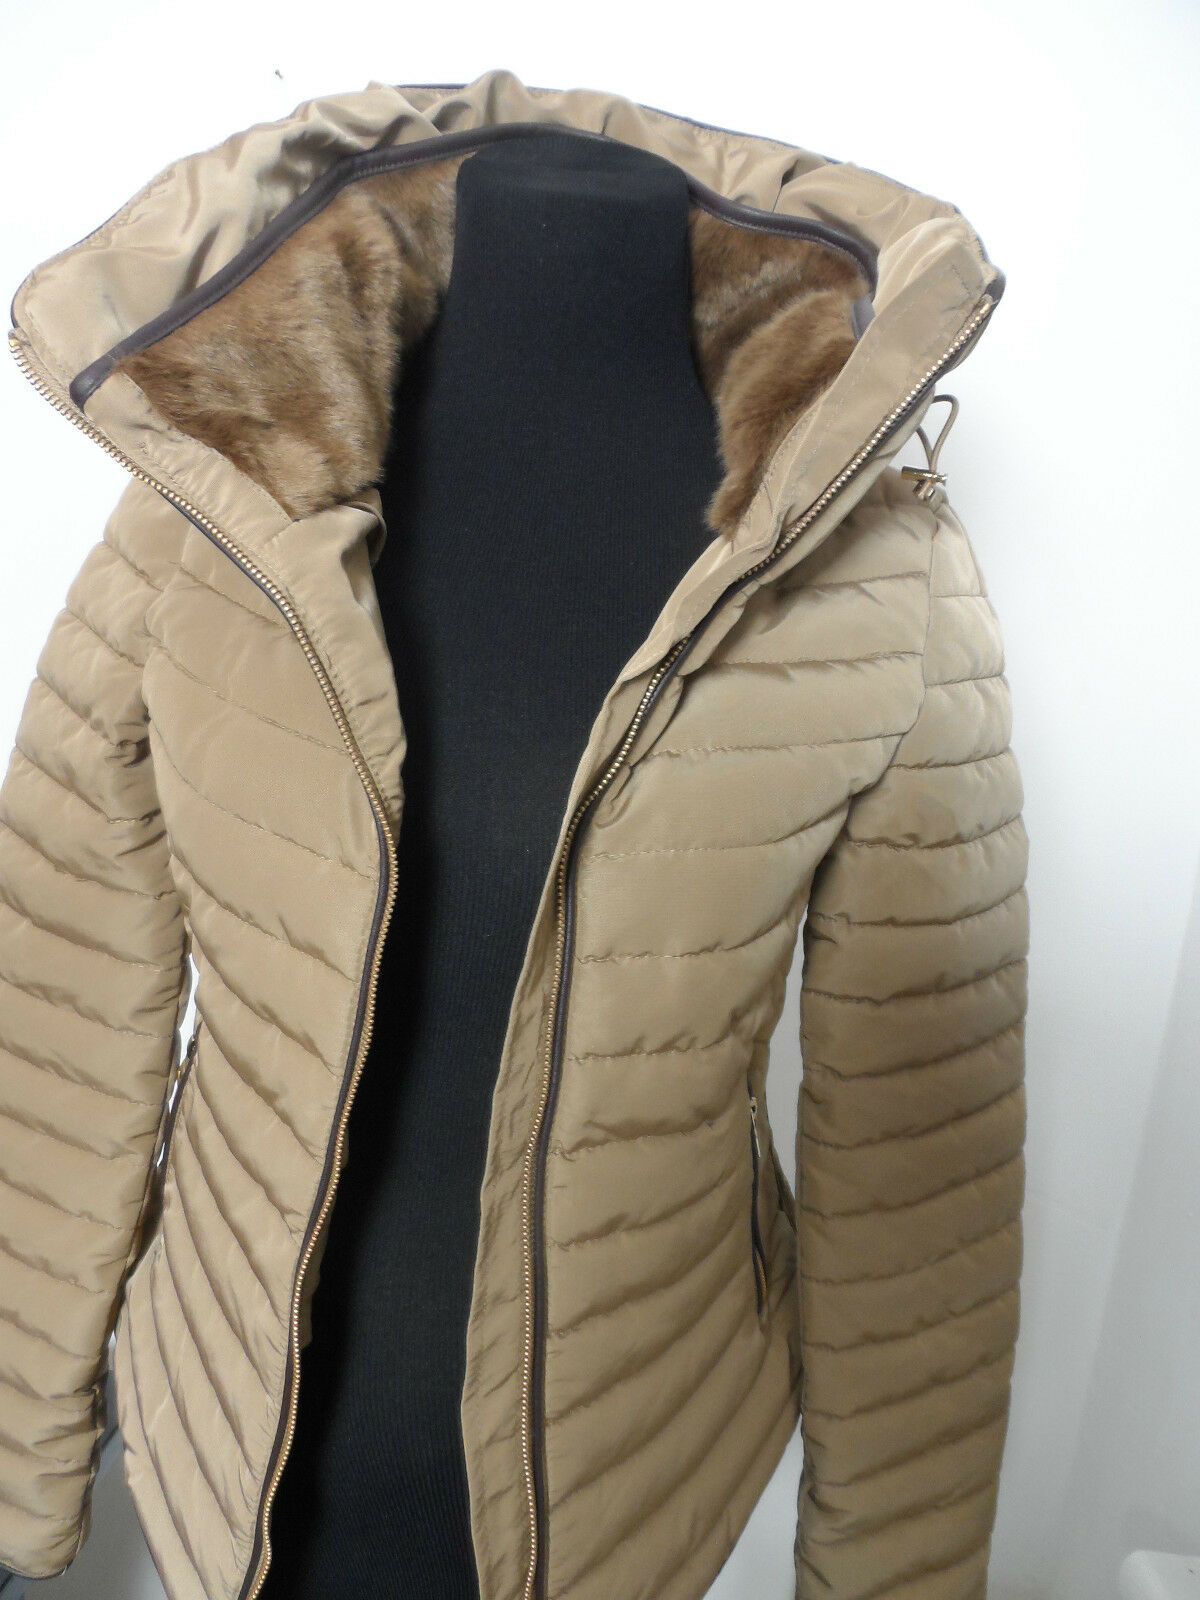 ZARA QUILTED ANORAK WITH FAUX FUR COLLAR Size XS